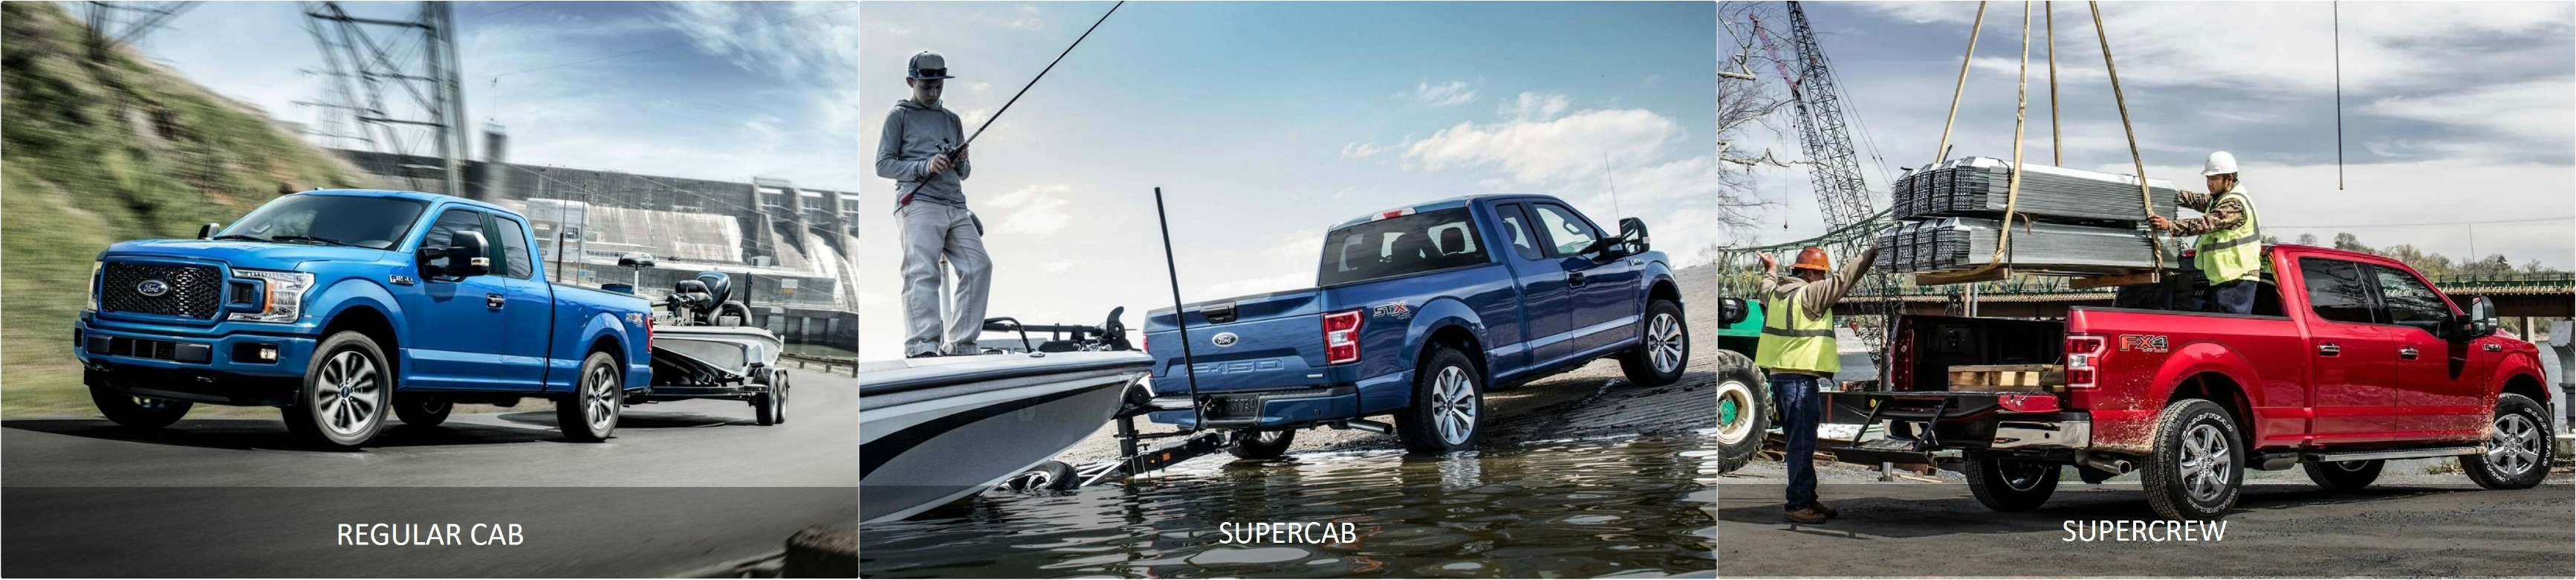 A Ford F150 Regular Cab vs. SuperCab vs. SuperCrew Towing and Payload